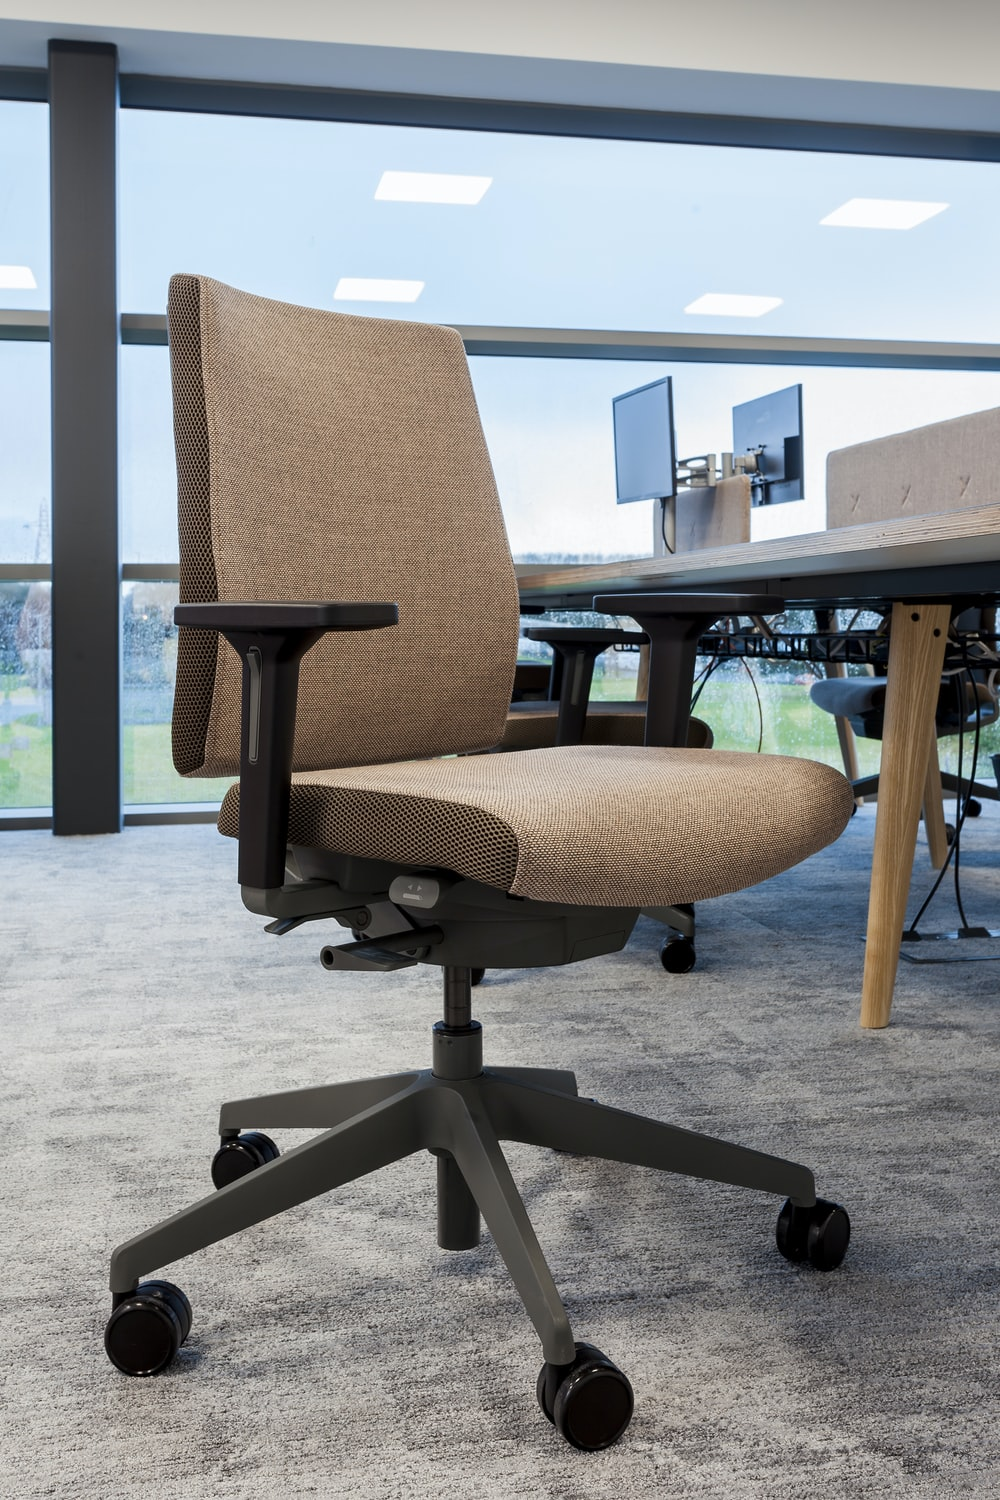 brown office rolling chair near table